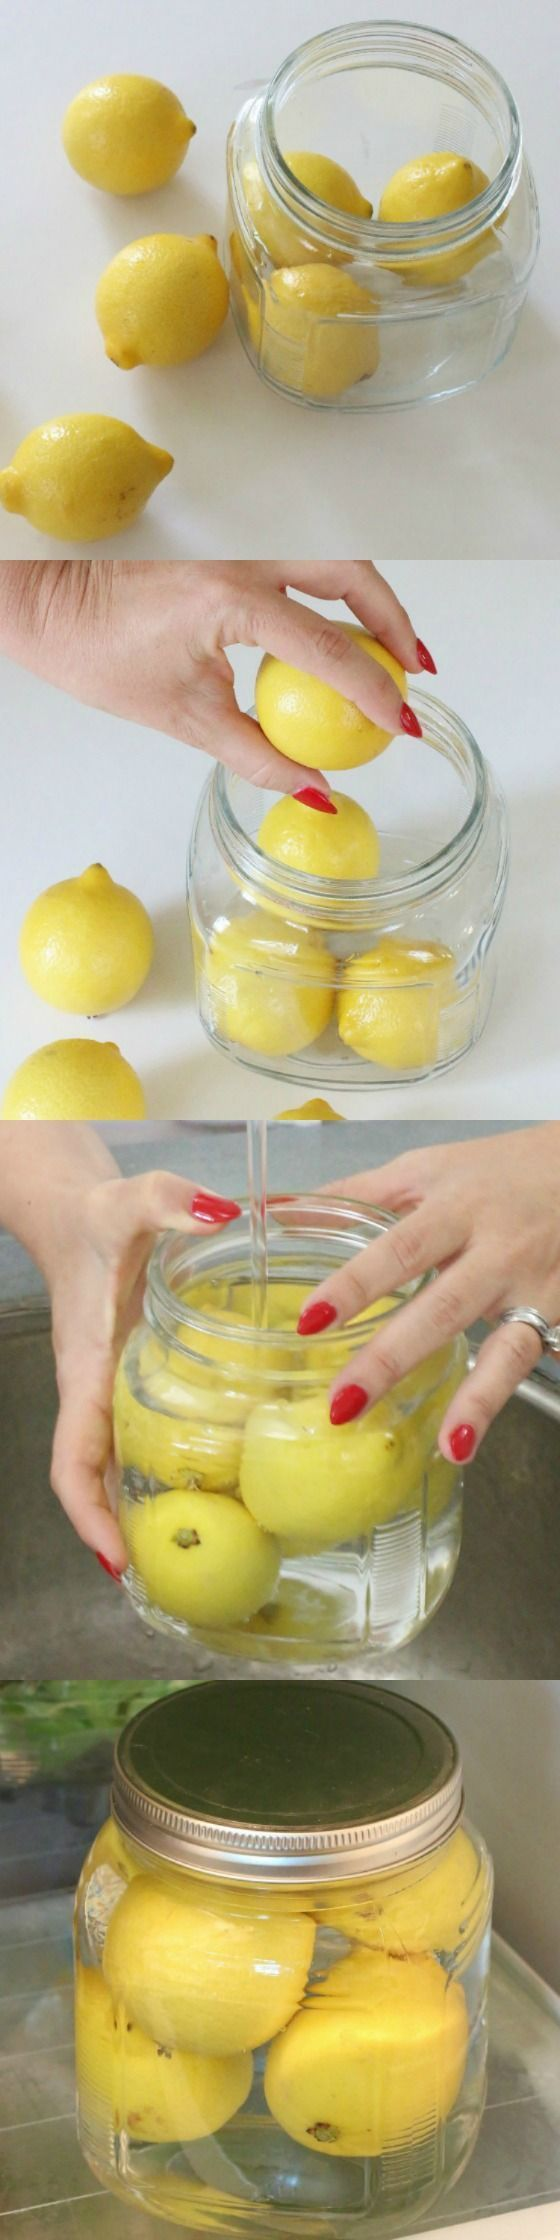 Stop keeping your lemons on your counter top, in the pantry, or in a bag in your fridge. There is a better way! Cover with water and place in fridge. It seals the peels and keeps them fresh.